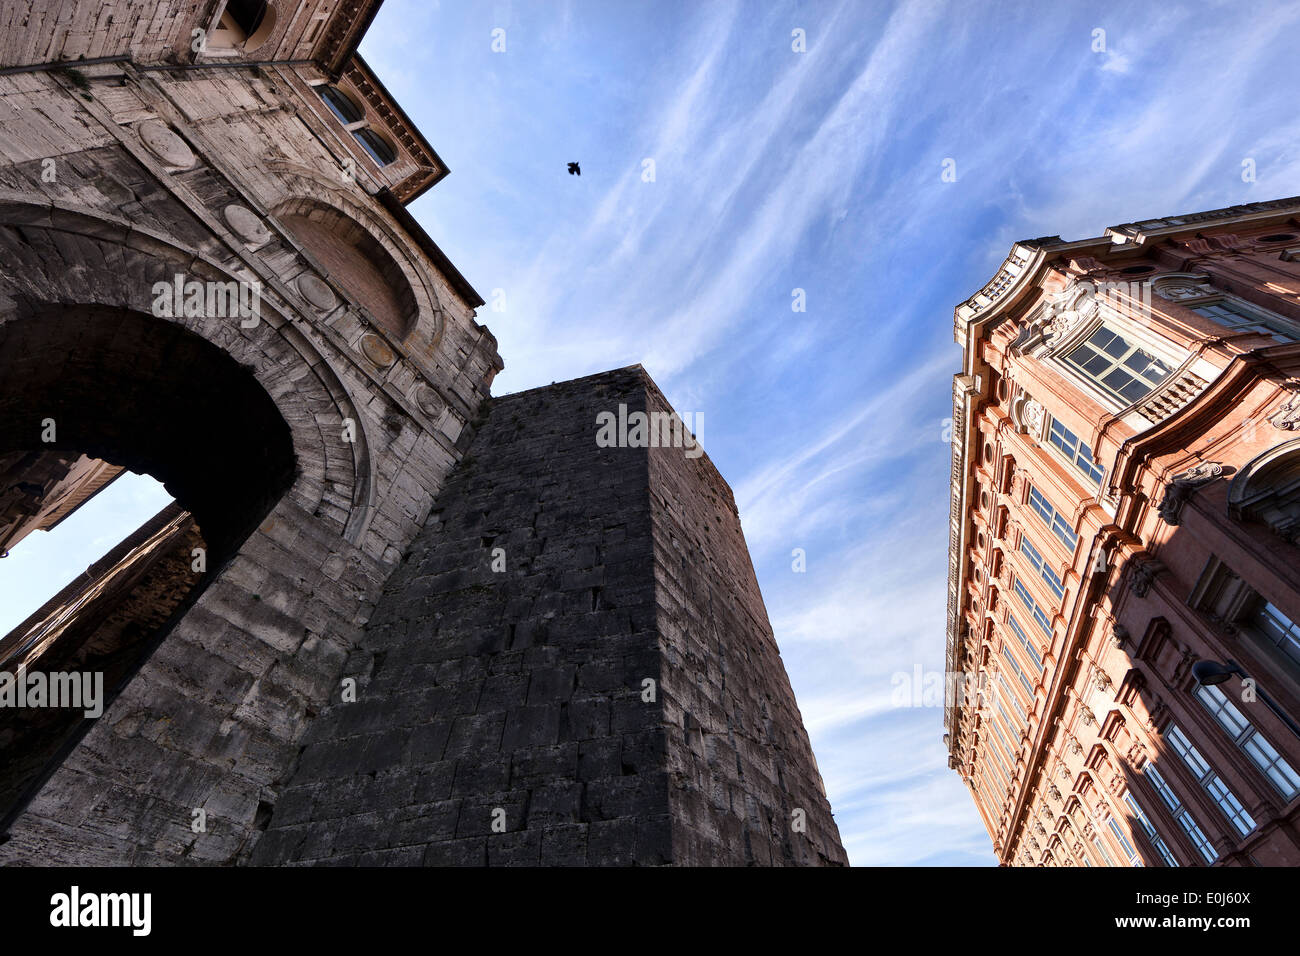 view Etruscan Arch and the University for Foreigners - Stock Image